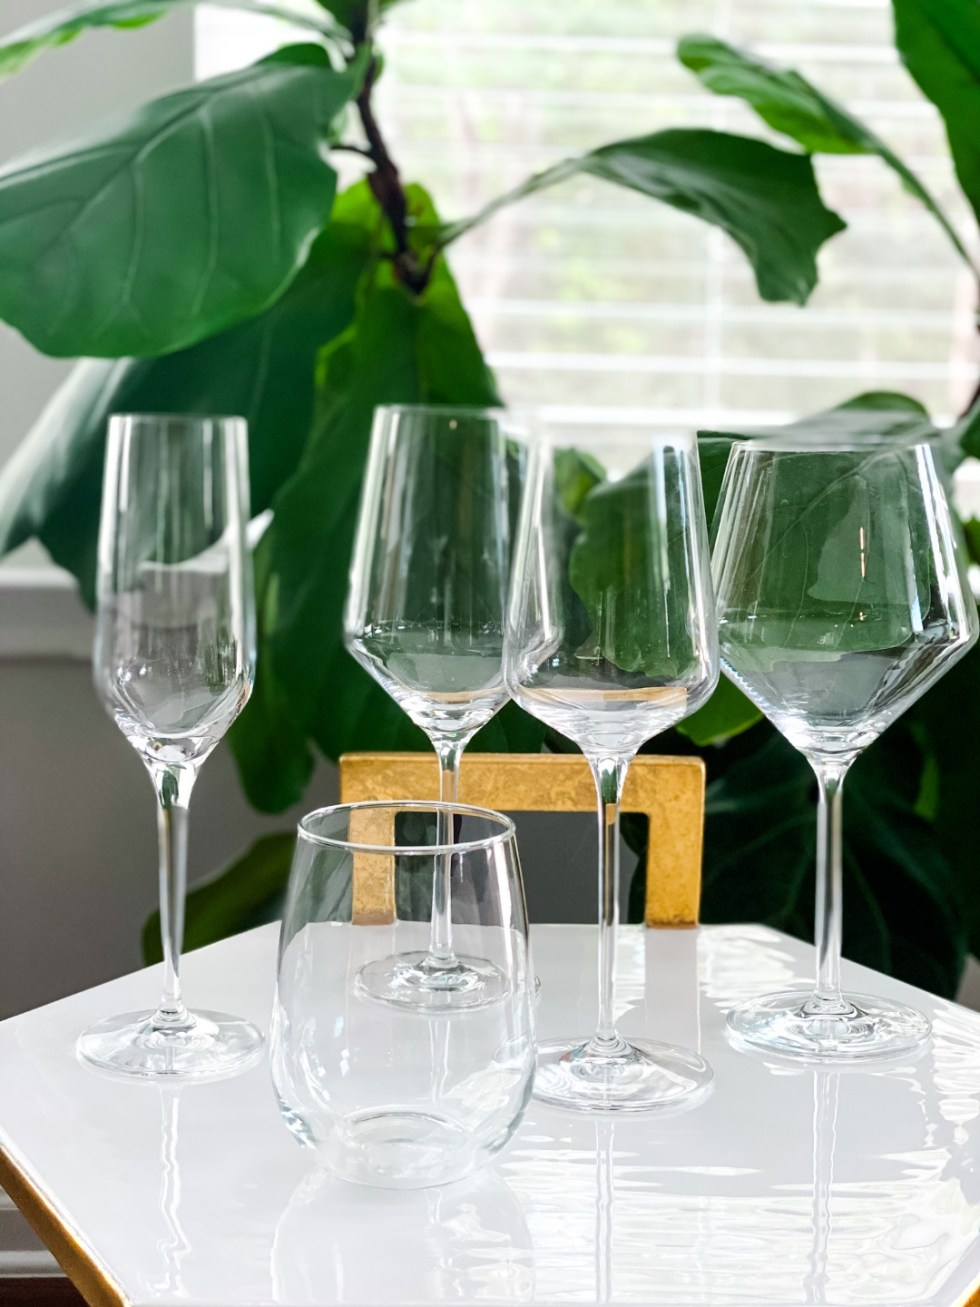 Top 5 Wine Glass Styles to Add to your Collection - I'm Fixin' To - @mbg0112   Wine Glass Styles by popular N.C. life and style blog, I'm Fixin' To: image of 5 different wine glasses.